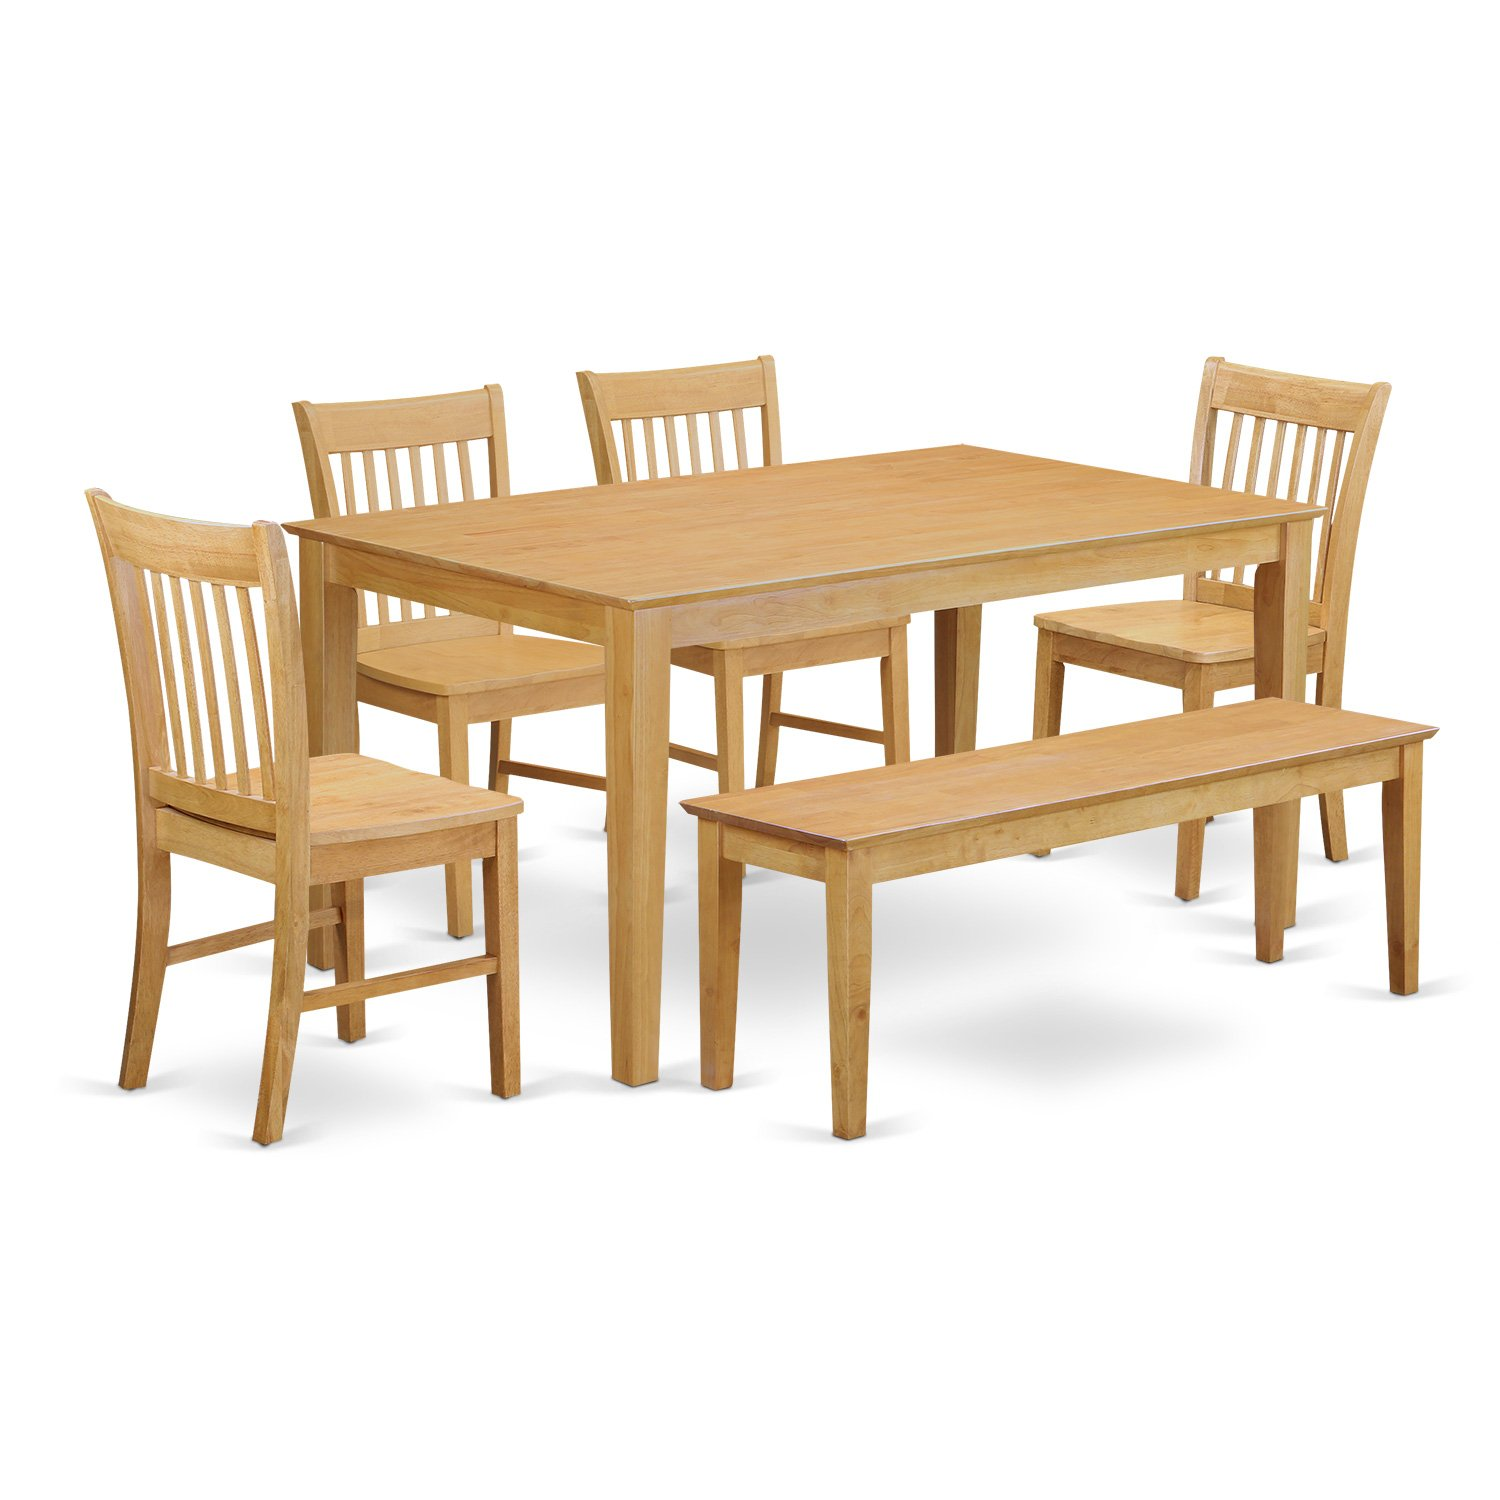 Amazon com  East West Furniture CANO6 OAK W 6 Piece Dining Table Set   Kitchen   Dining. Amazon com  East West Furniture CANO6 OAK W 6 Piece Dining Table